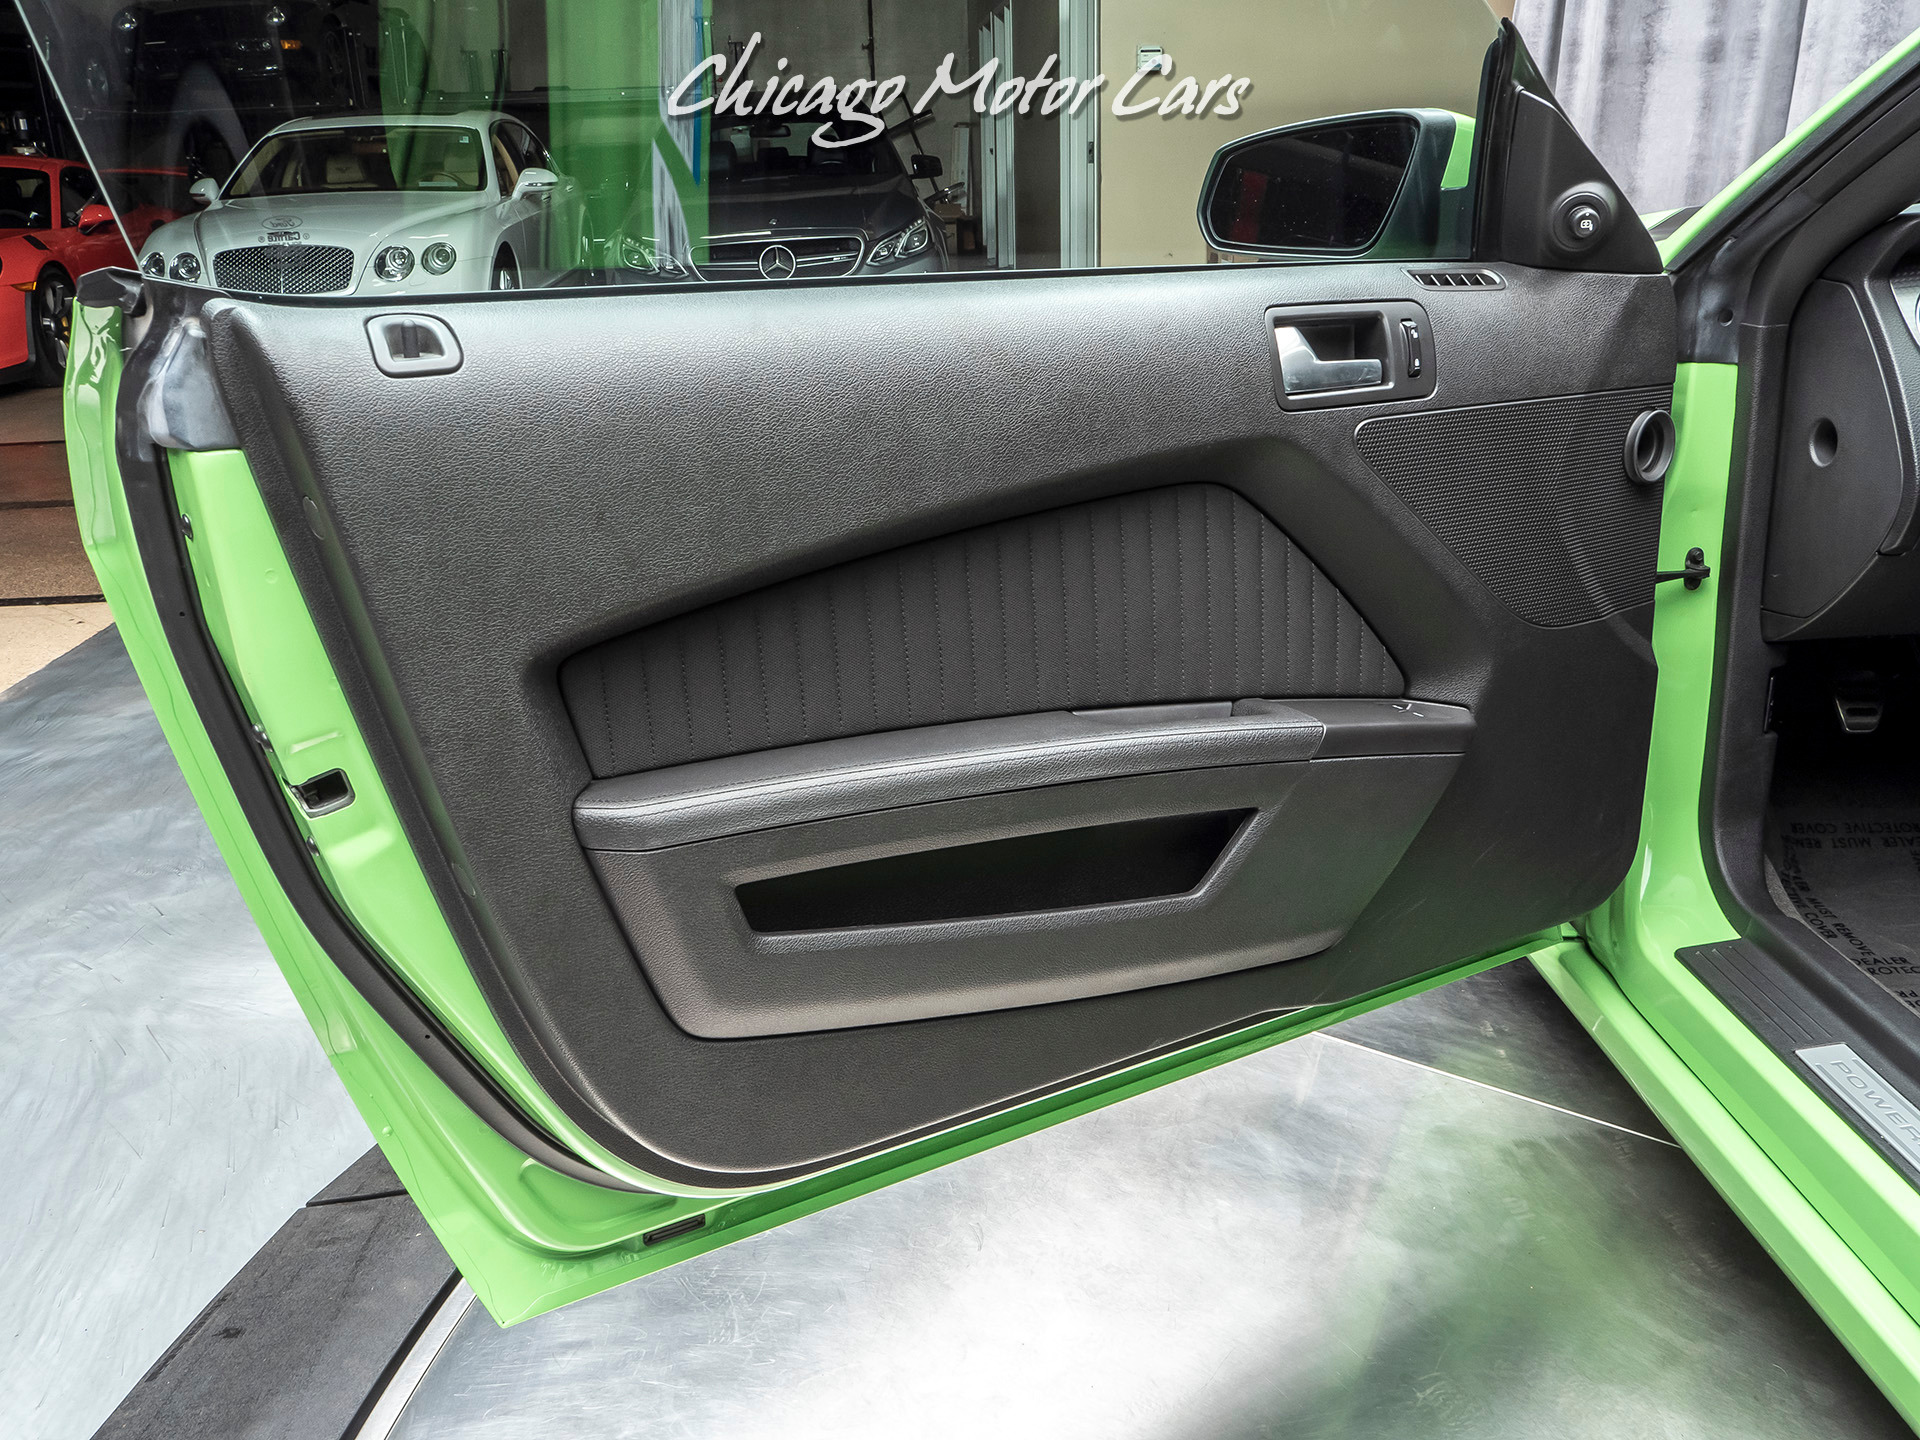 Used-2013-Ford-Mustang-Mustang-Boss-302-GOTTA-HAVE-IT-GREEN-METALLIC-TRI-COAT-RARE-EXAMPLE